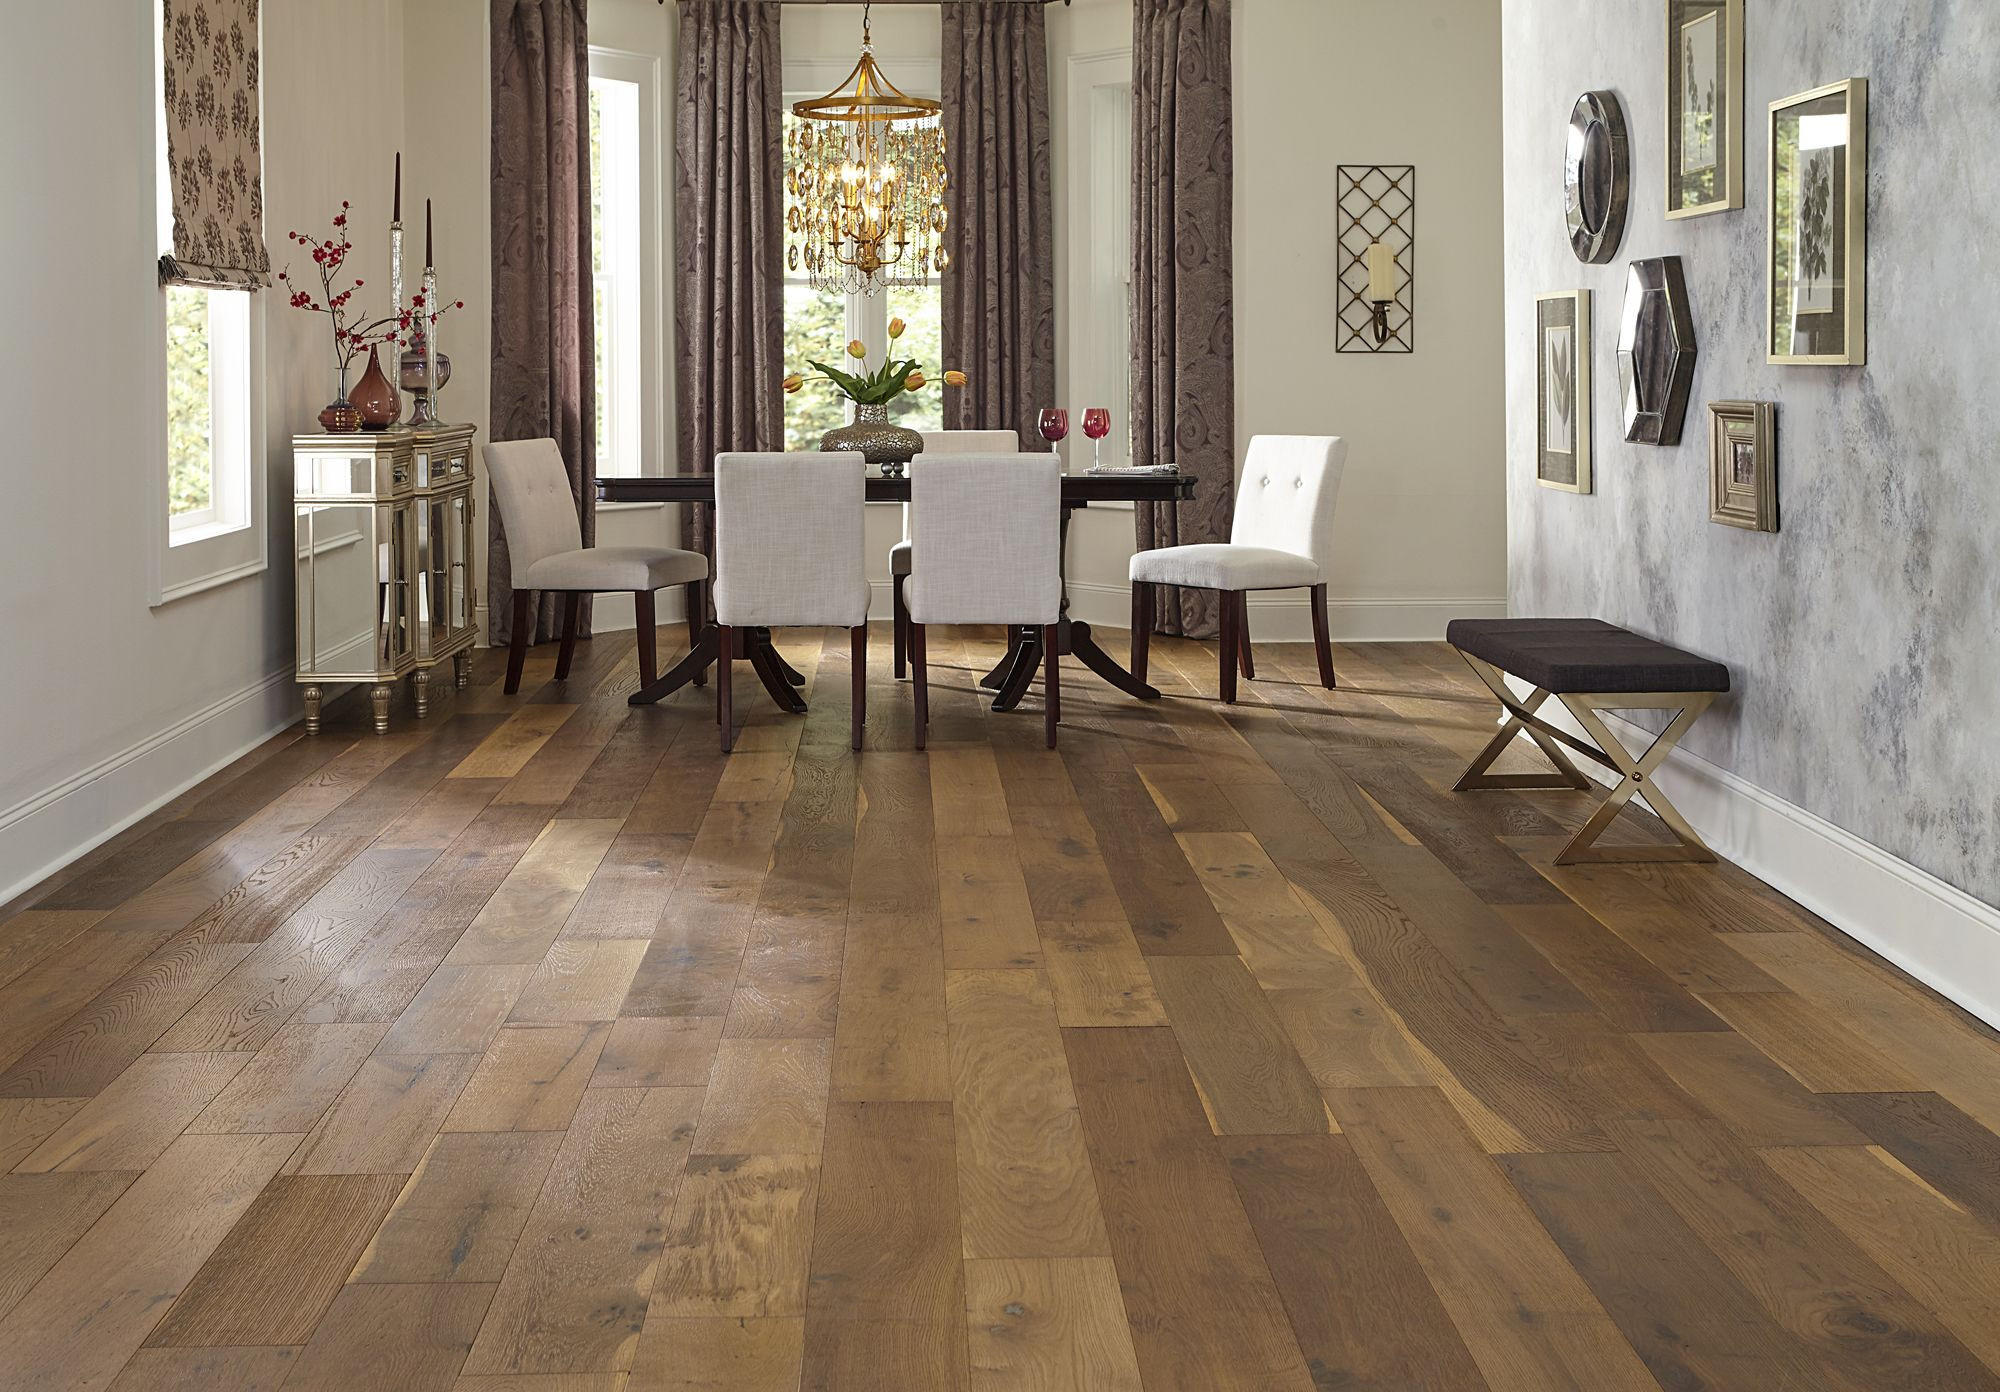 How Much Does It Cost to Install Engineered Hardwood Floors Of 7 1 2 Wide Planks and A Rustic Look Bellawood Willow Manor Oak Has with 7 1 2 Wide Planks and A Rustic Look Bellawood Willow Manor Oak Has A Storied Old World Appearance